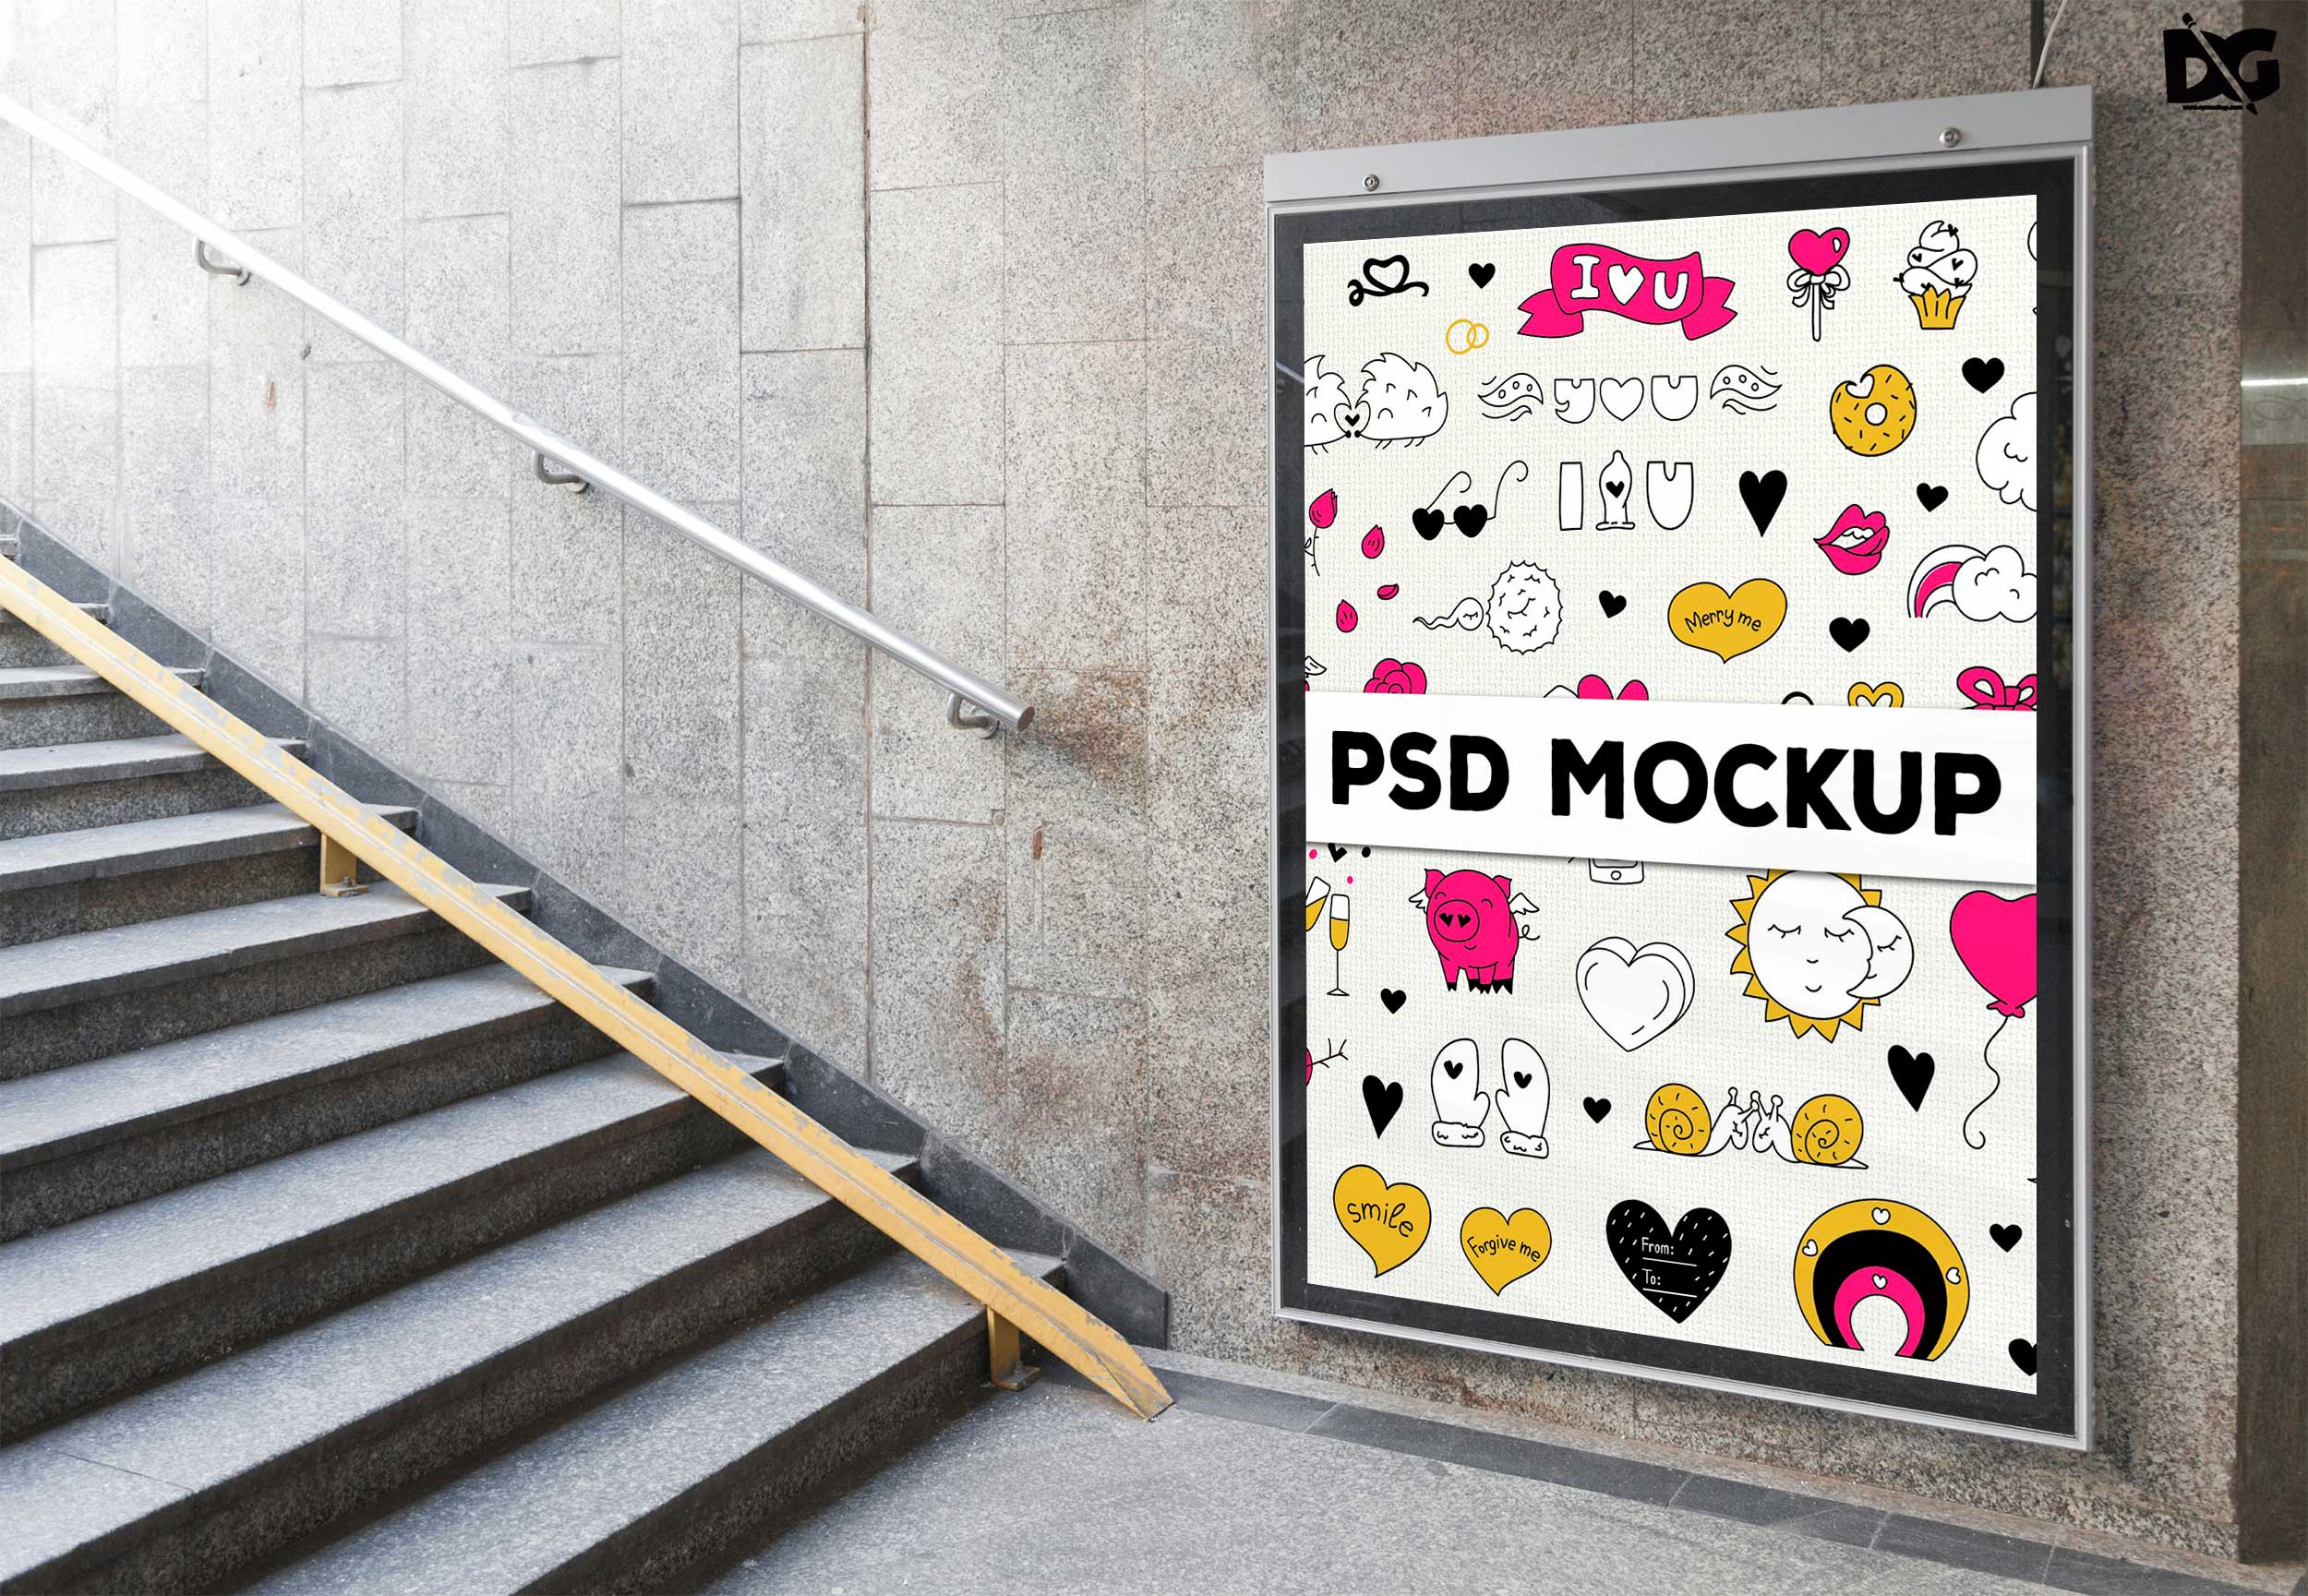 Free Stair Case Side Wall Billboard Mockup Template | Free PSD Mockup